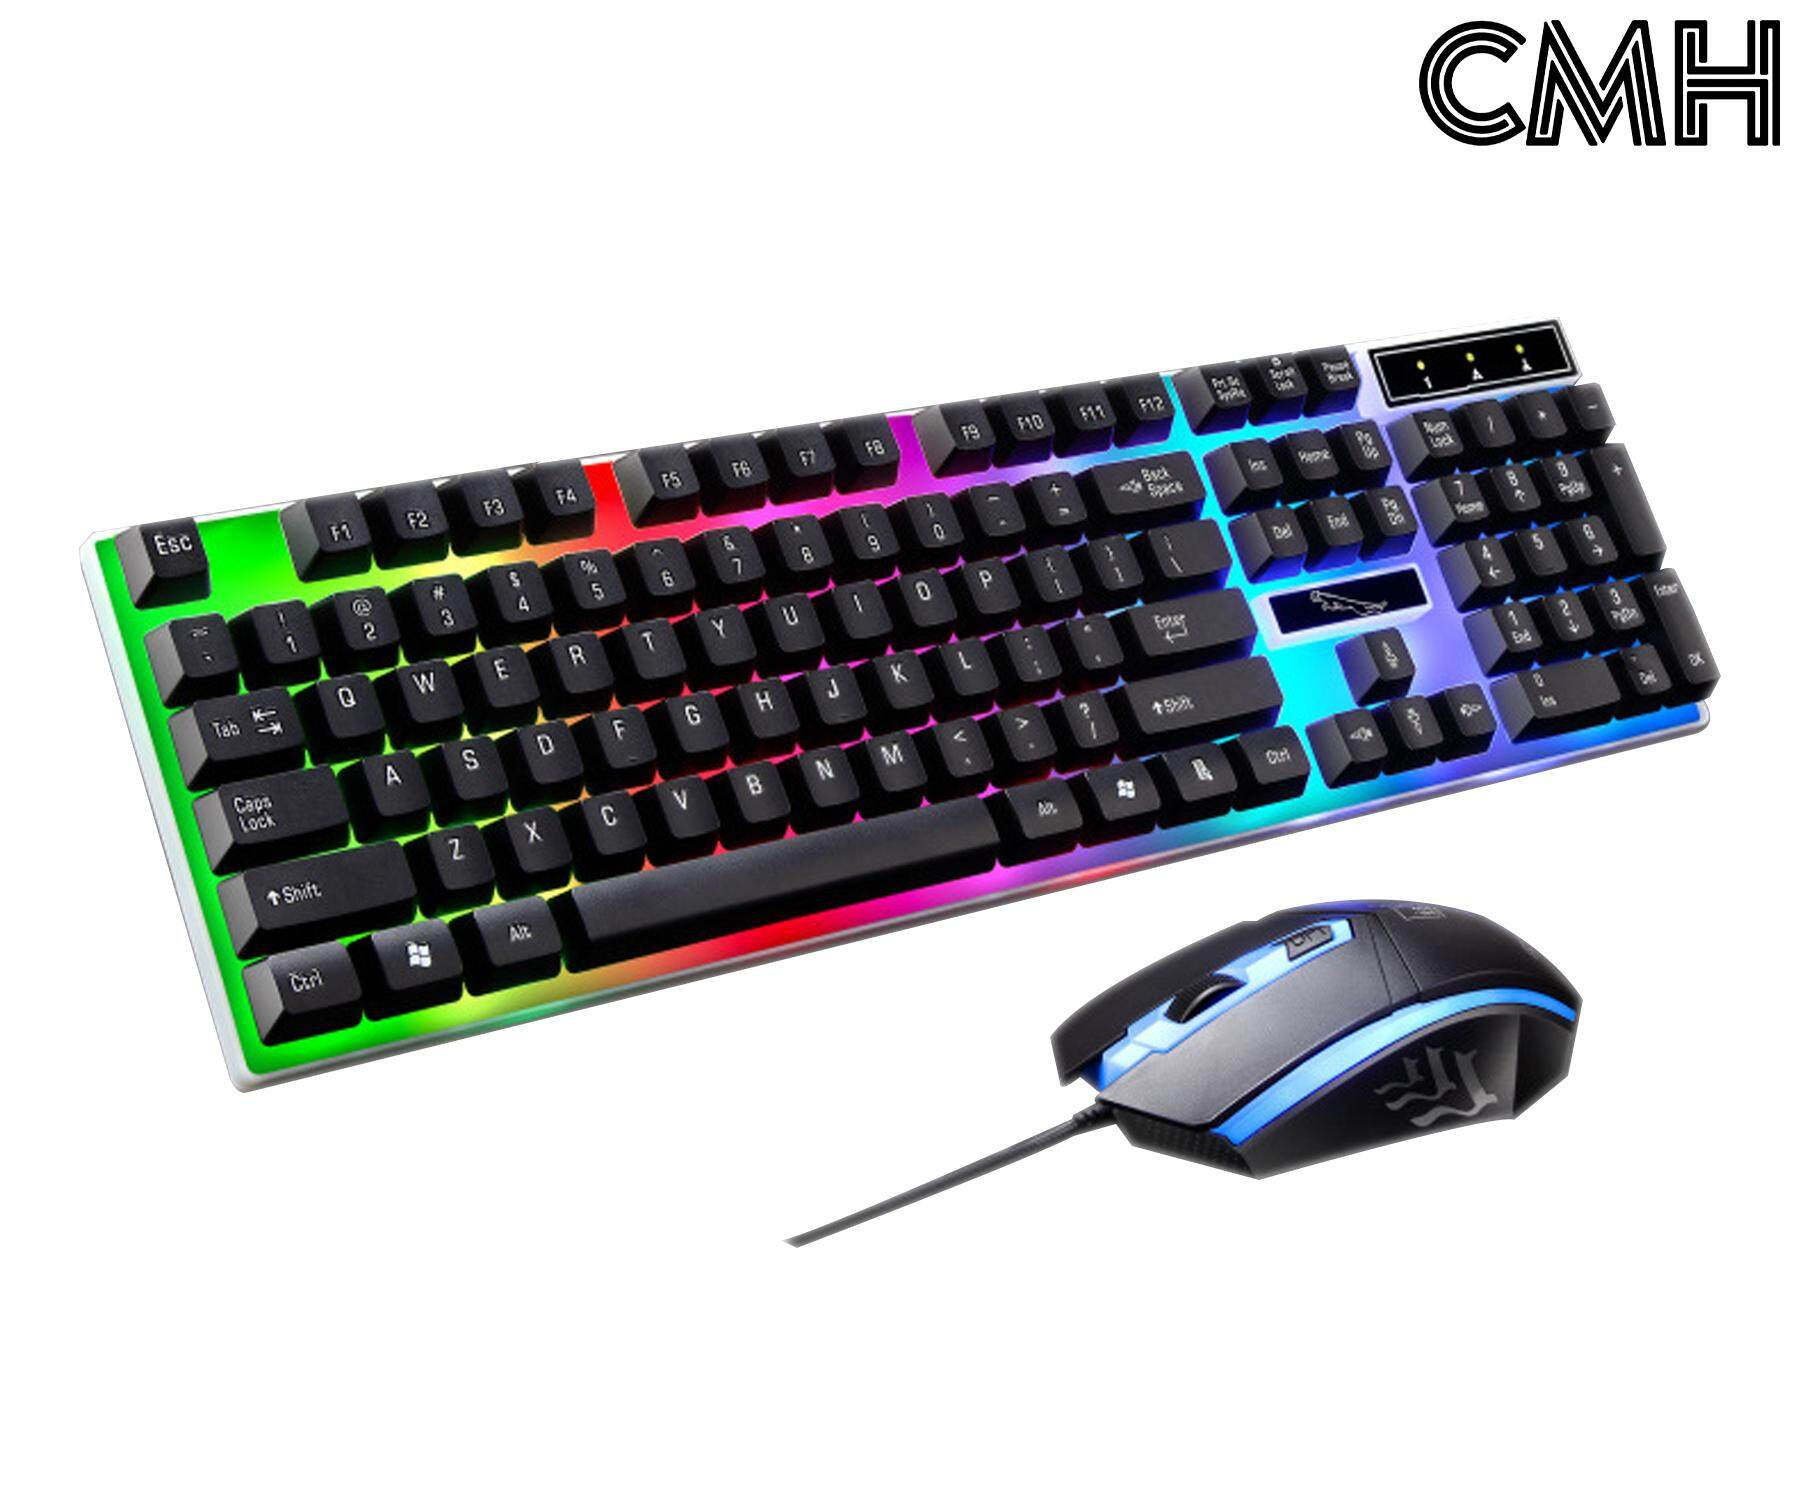 602b88be6e9d CMH USB Wired Mechanical Keyboard and Mouse Combo With Borderless Rainbow  Backlight For PC/Laptop. Illuminated Keyboard and Mouse Combo Set For  Gaming ...